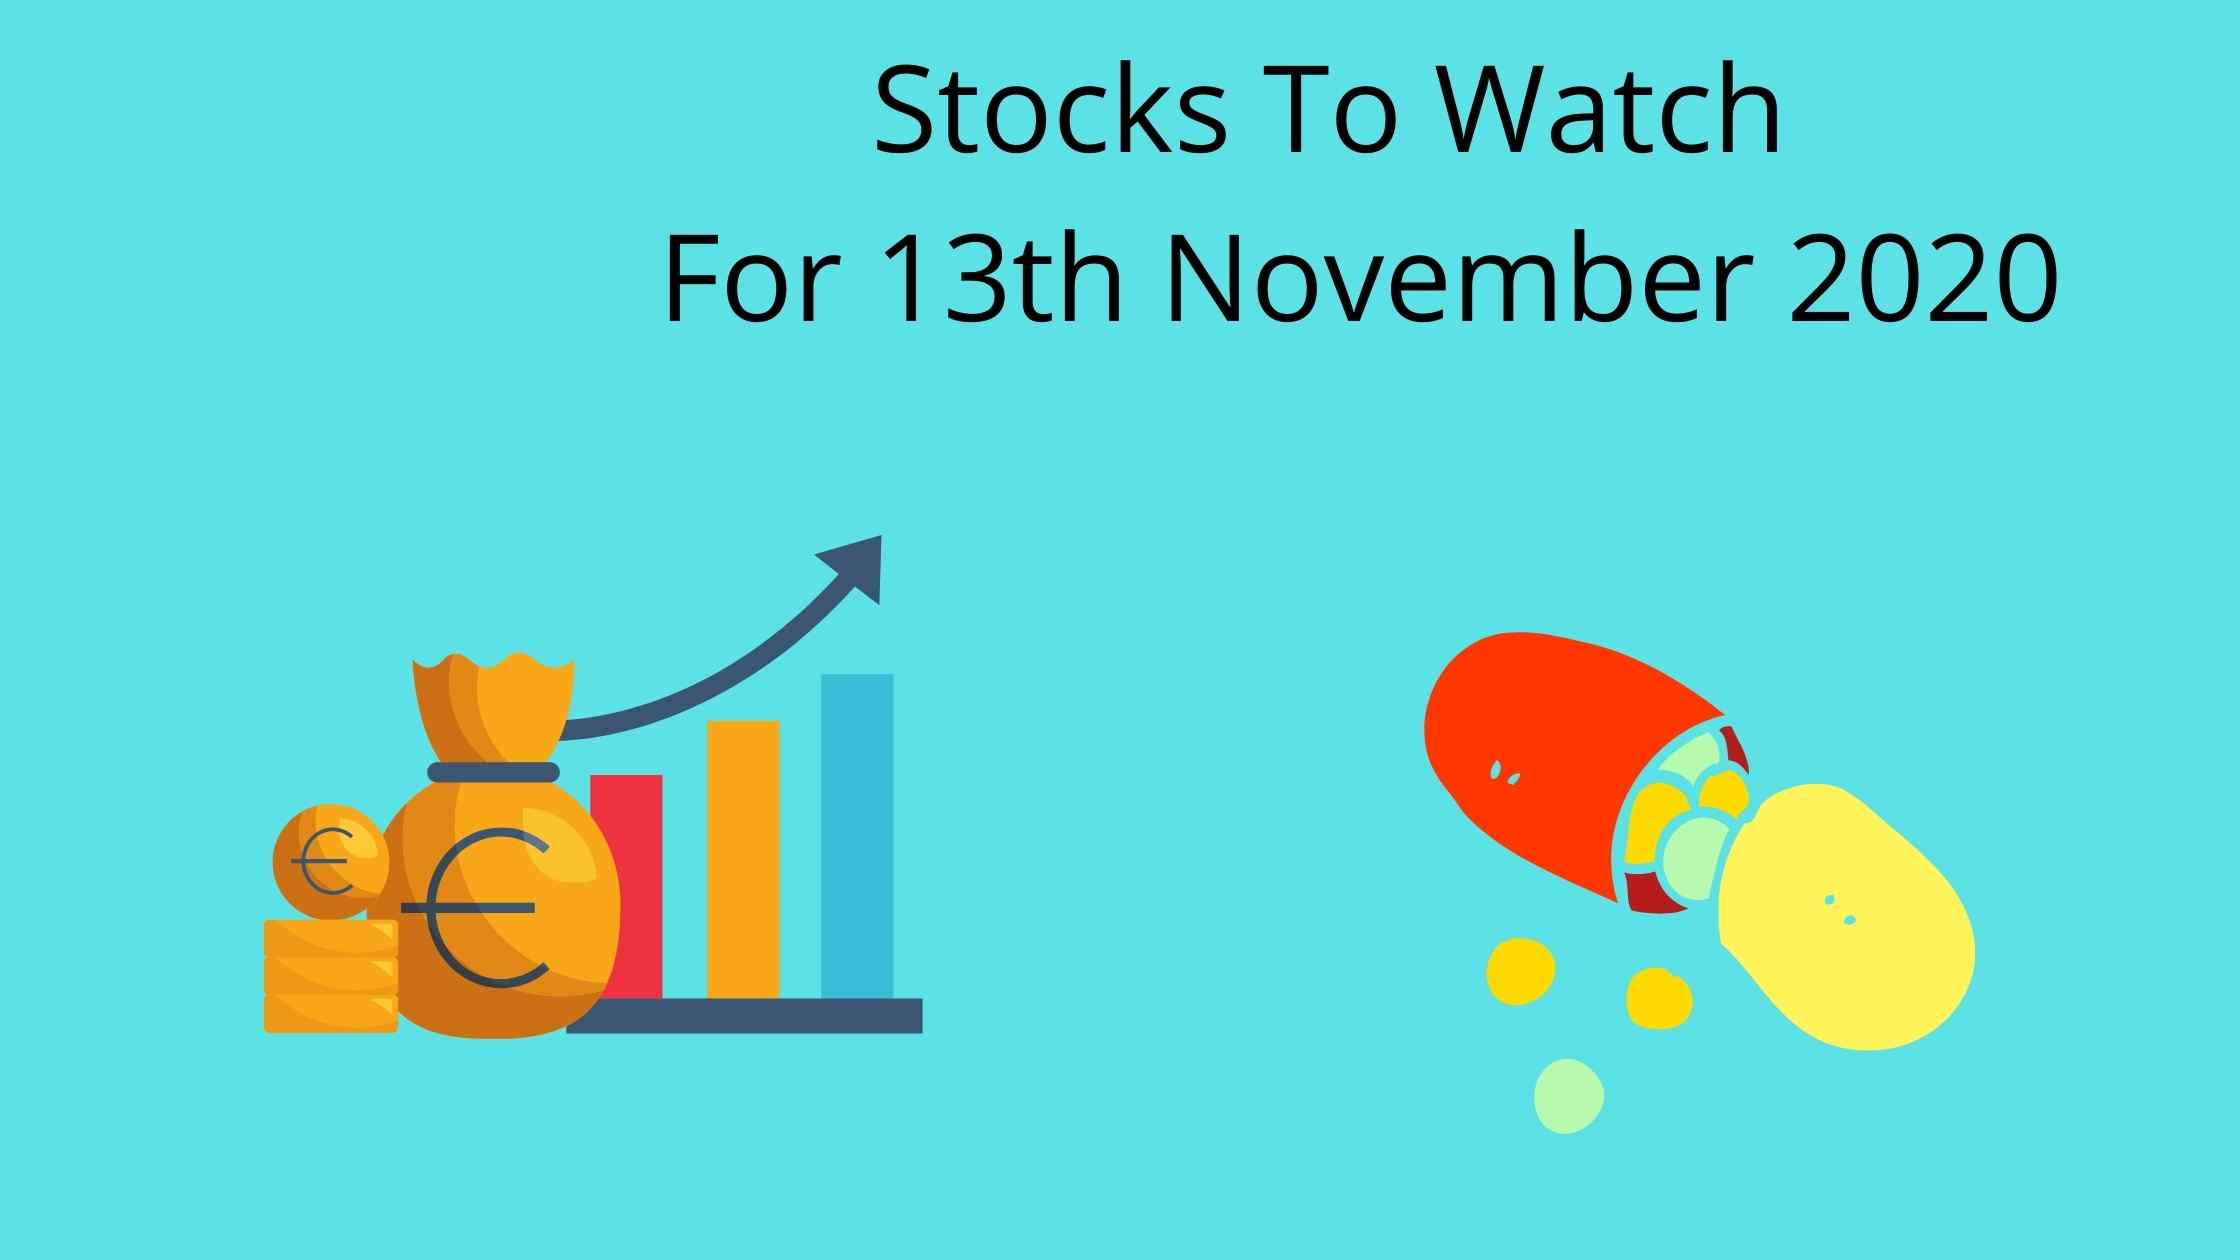 Stocks To Watch For 13th November 2020